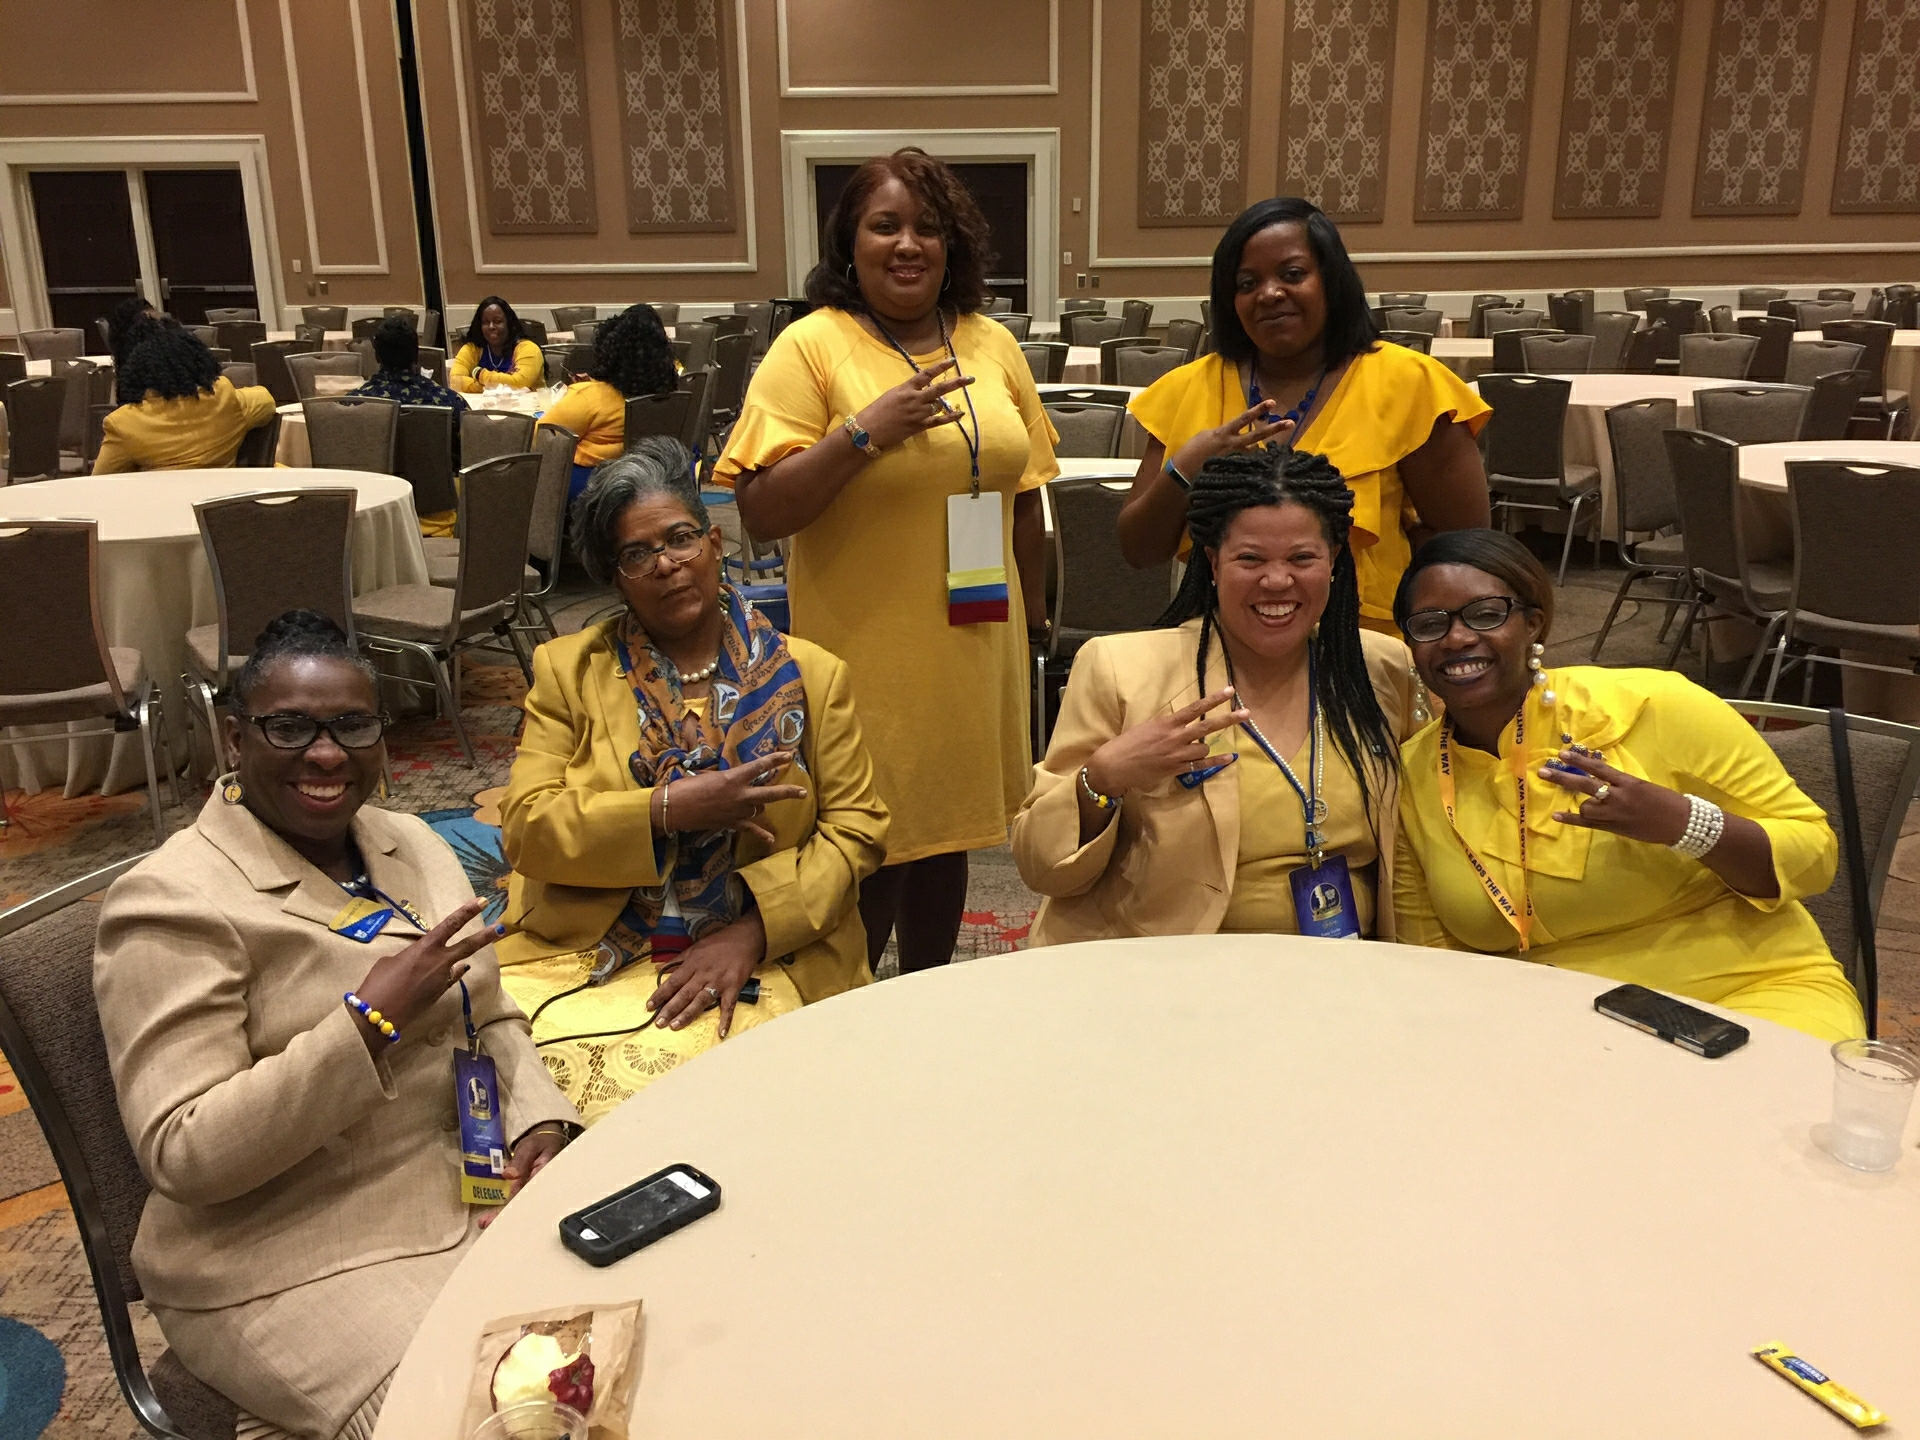 Sorors Yowell and Rhynes at Boule 2018, Dallas TX 5